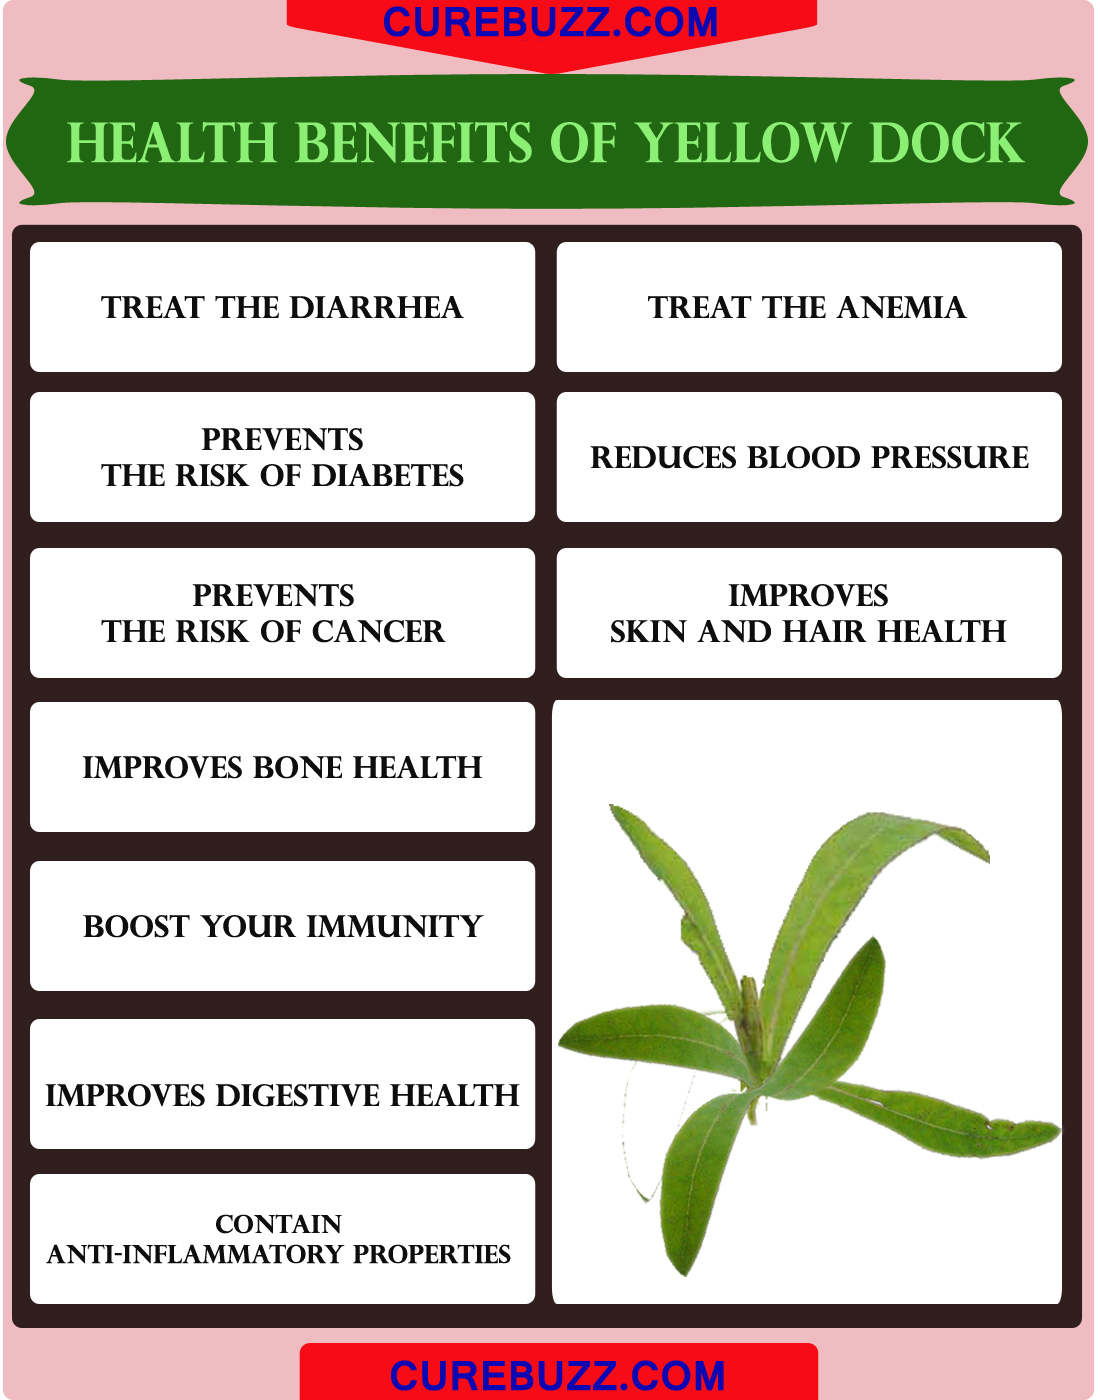 Health Benefits of Yellow Dock